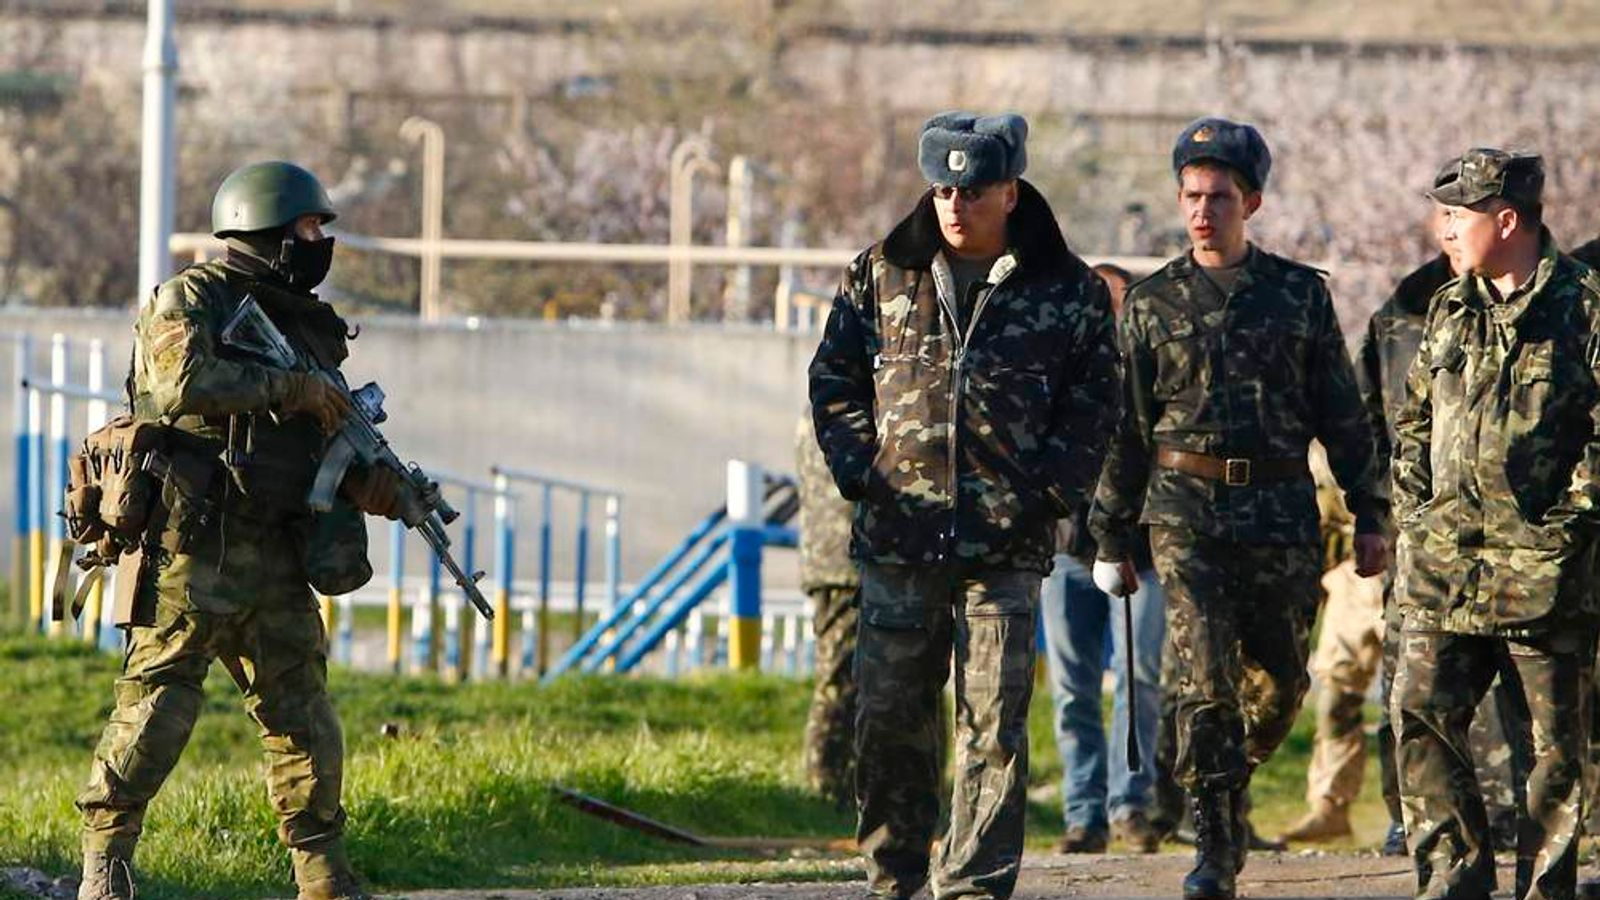 An armed man, believed to be a Russian serviceman, stands guard as Ukrainian servicemen pass by at a military airbase in the Crimean town of Belbek near Sevastopol